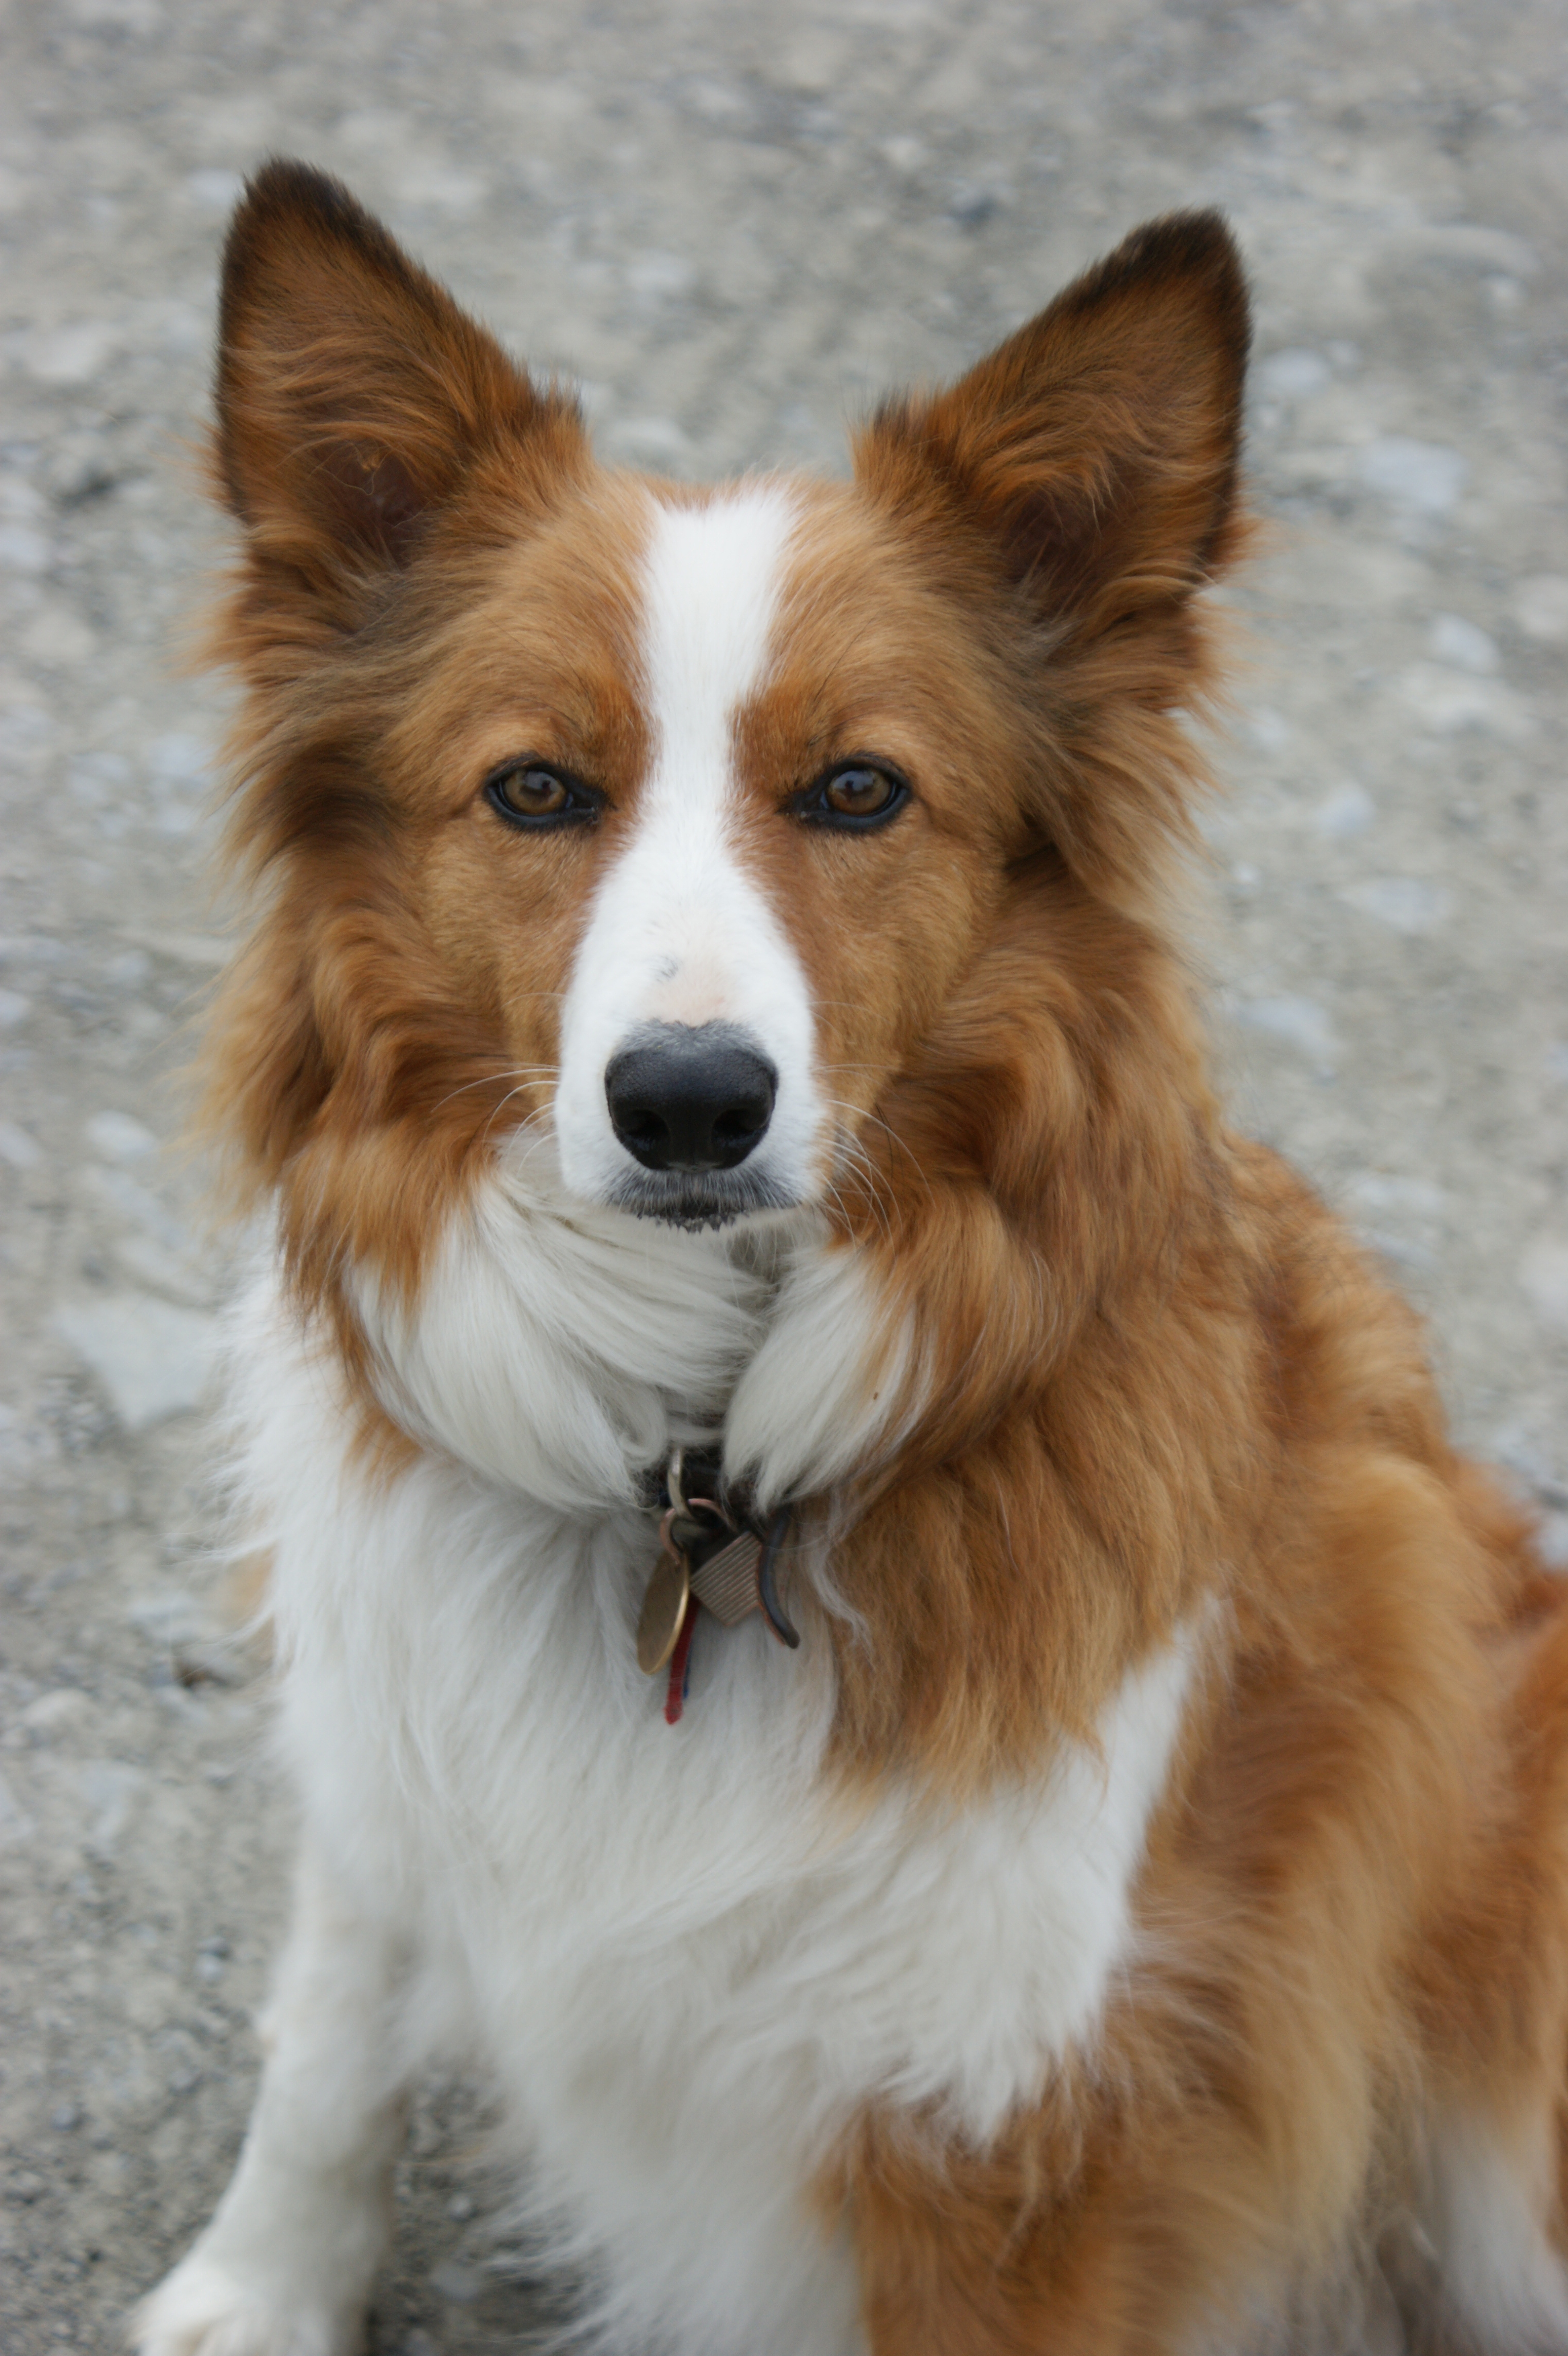 ... Welsh Sheepdog on Pinterest | Welsh sheepdog, Collie dog and Welsh